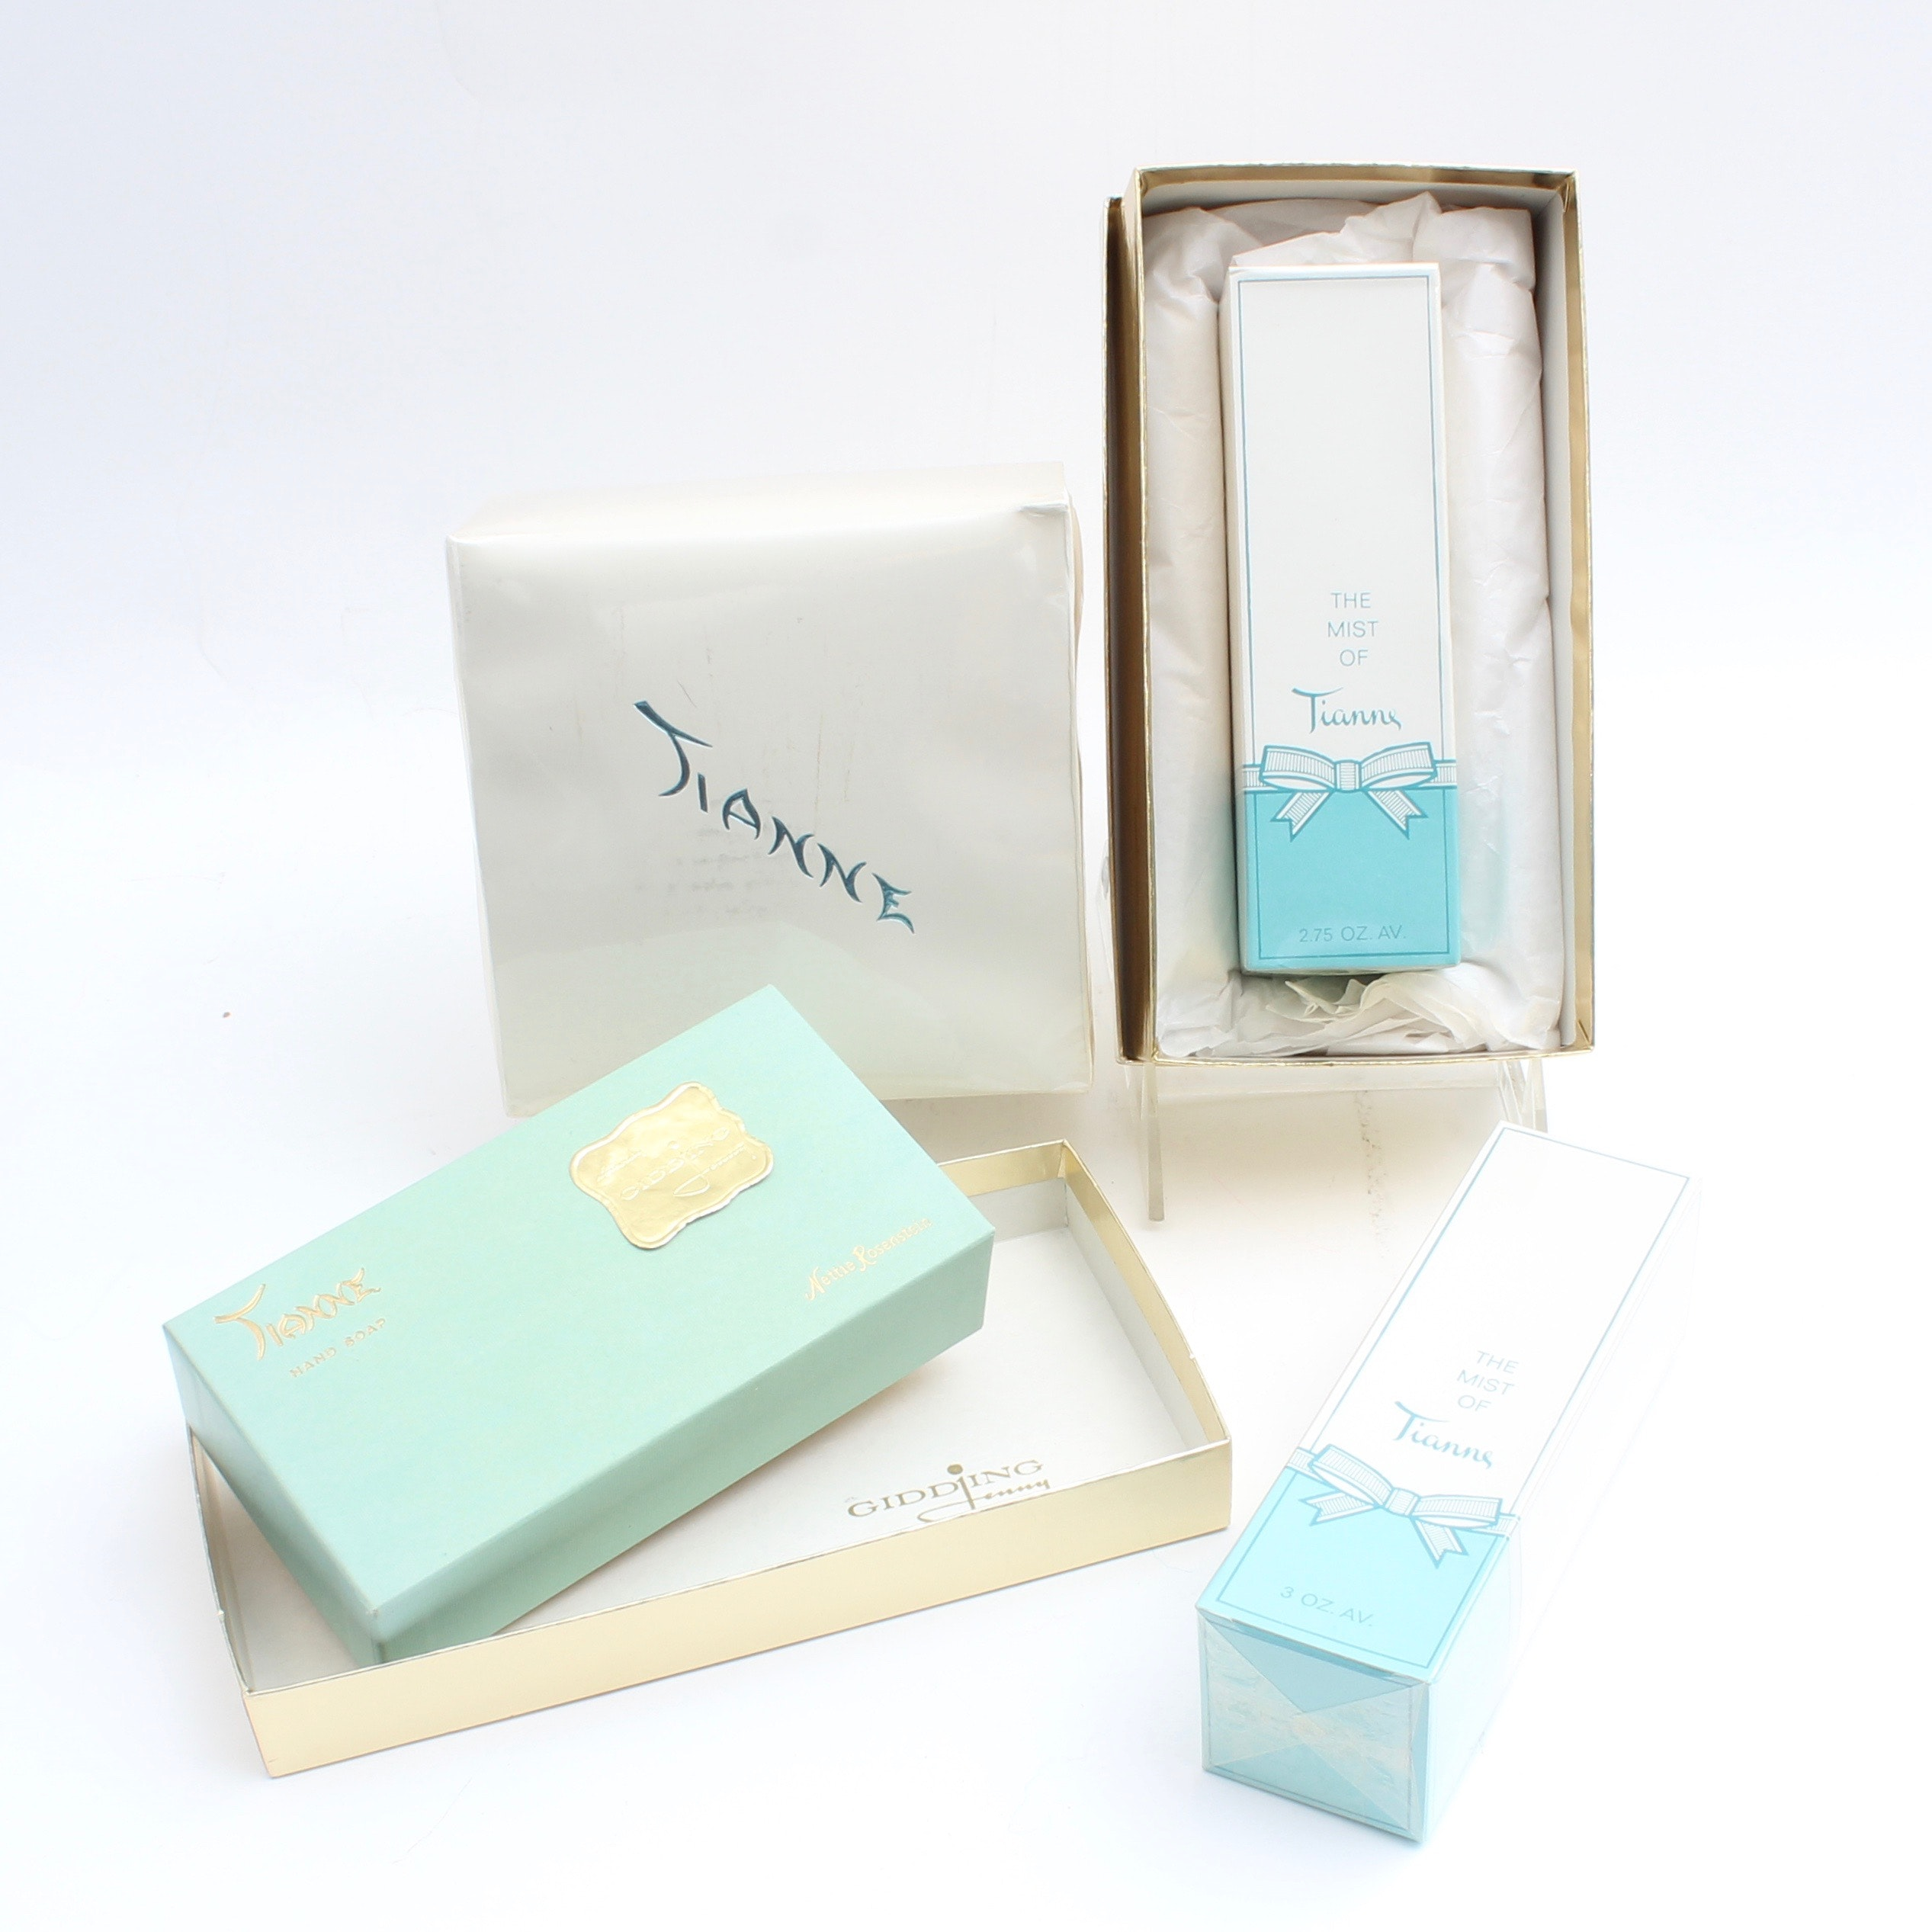 """Original Gidding Jenny """"Tianne"""" Fragrance and Other Body Products"""